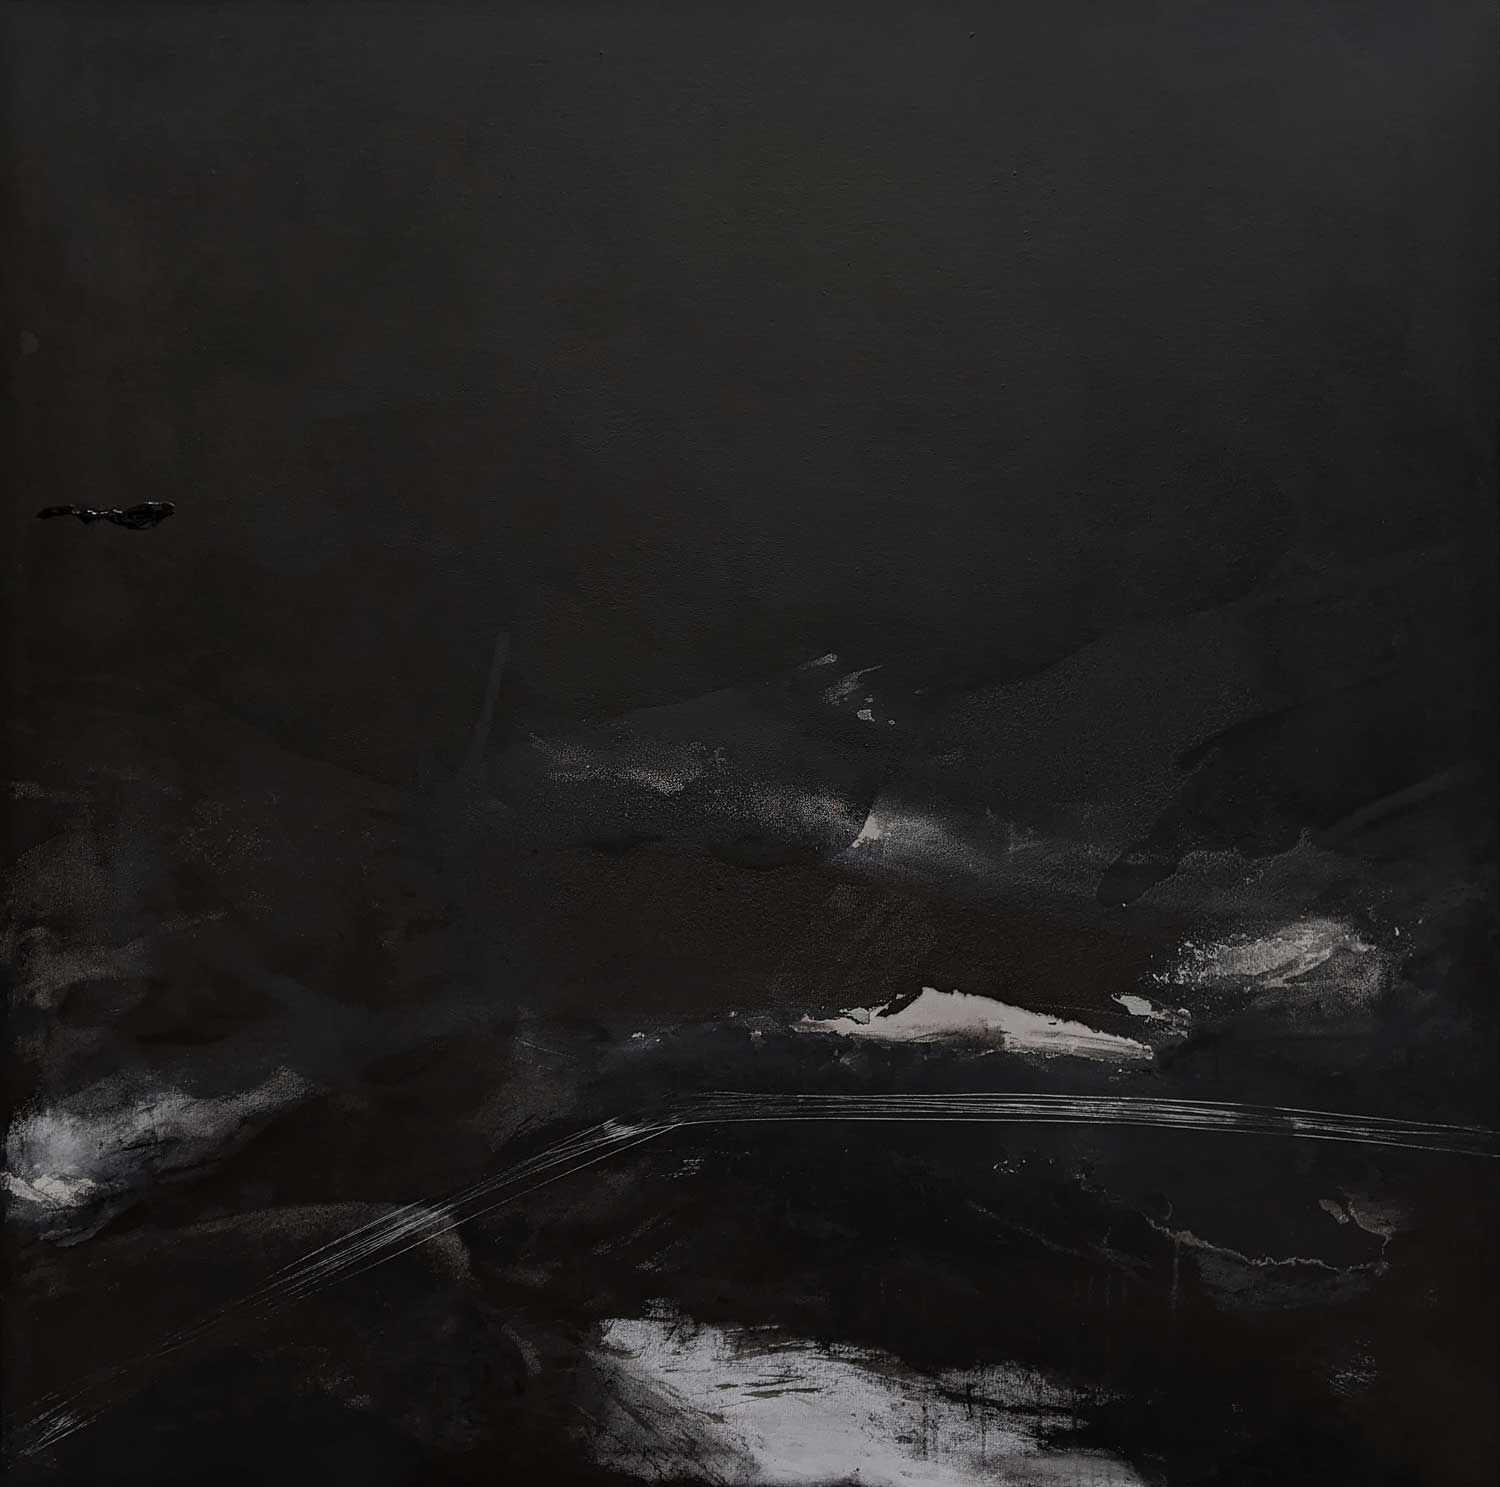 Emilie HeurteventThe Abyss #6, 2020Acrylic and ink on canvas122 cm by 122 cm$2,500